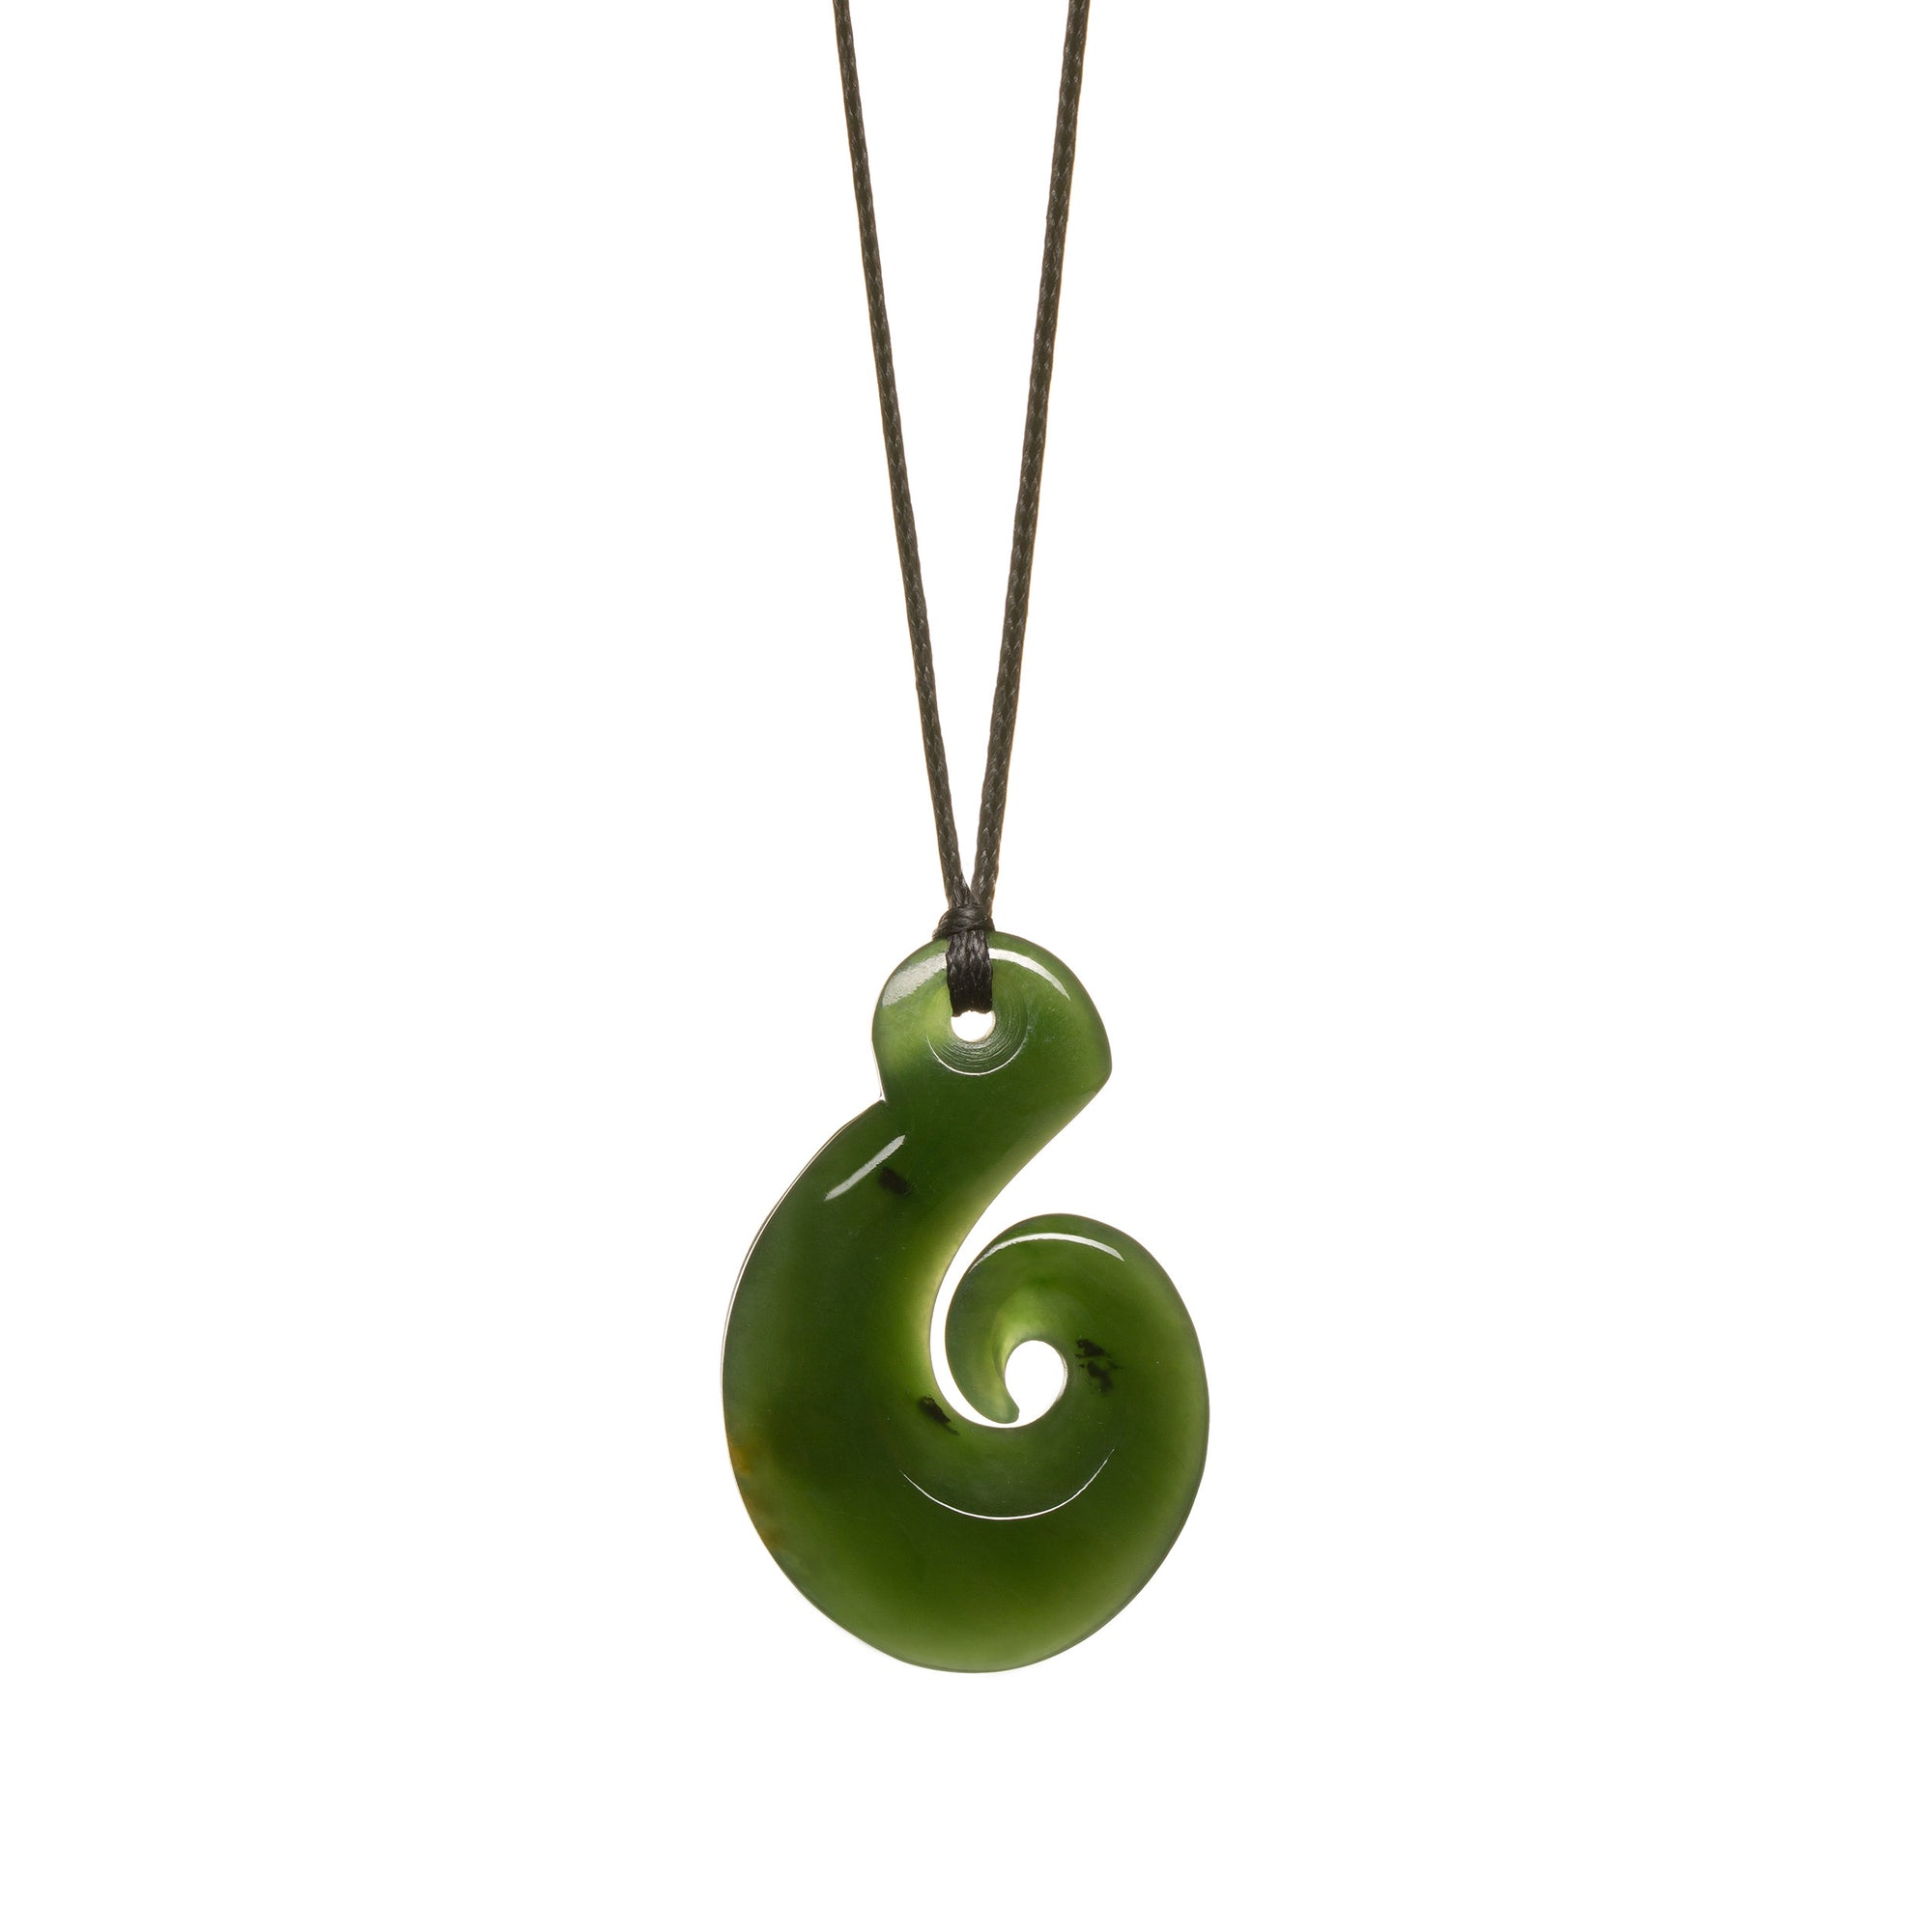 New Zealand Pounamu Curved Hook Necklace